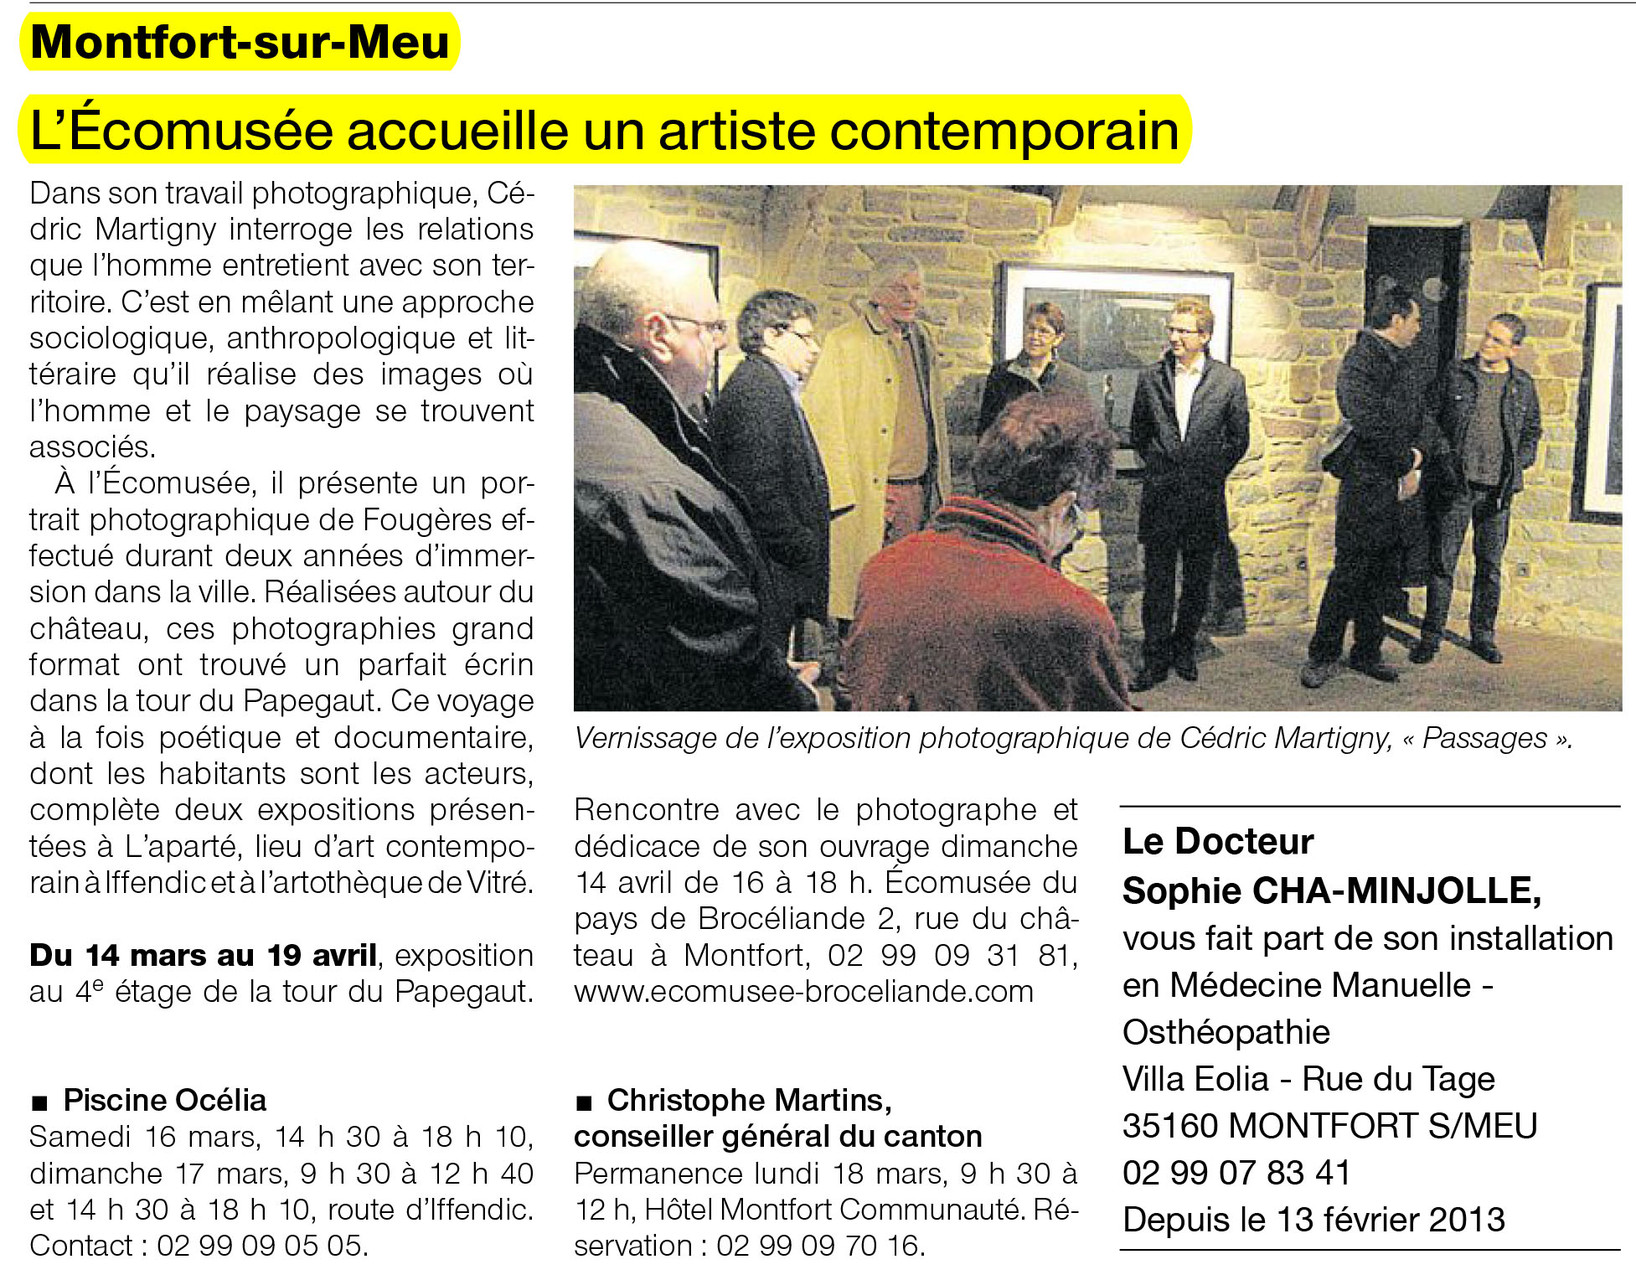 Ouest-France - 16 mars 2013